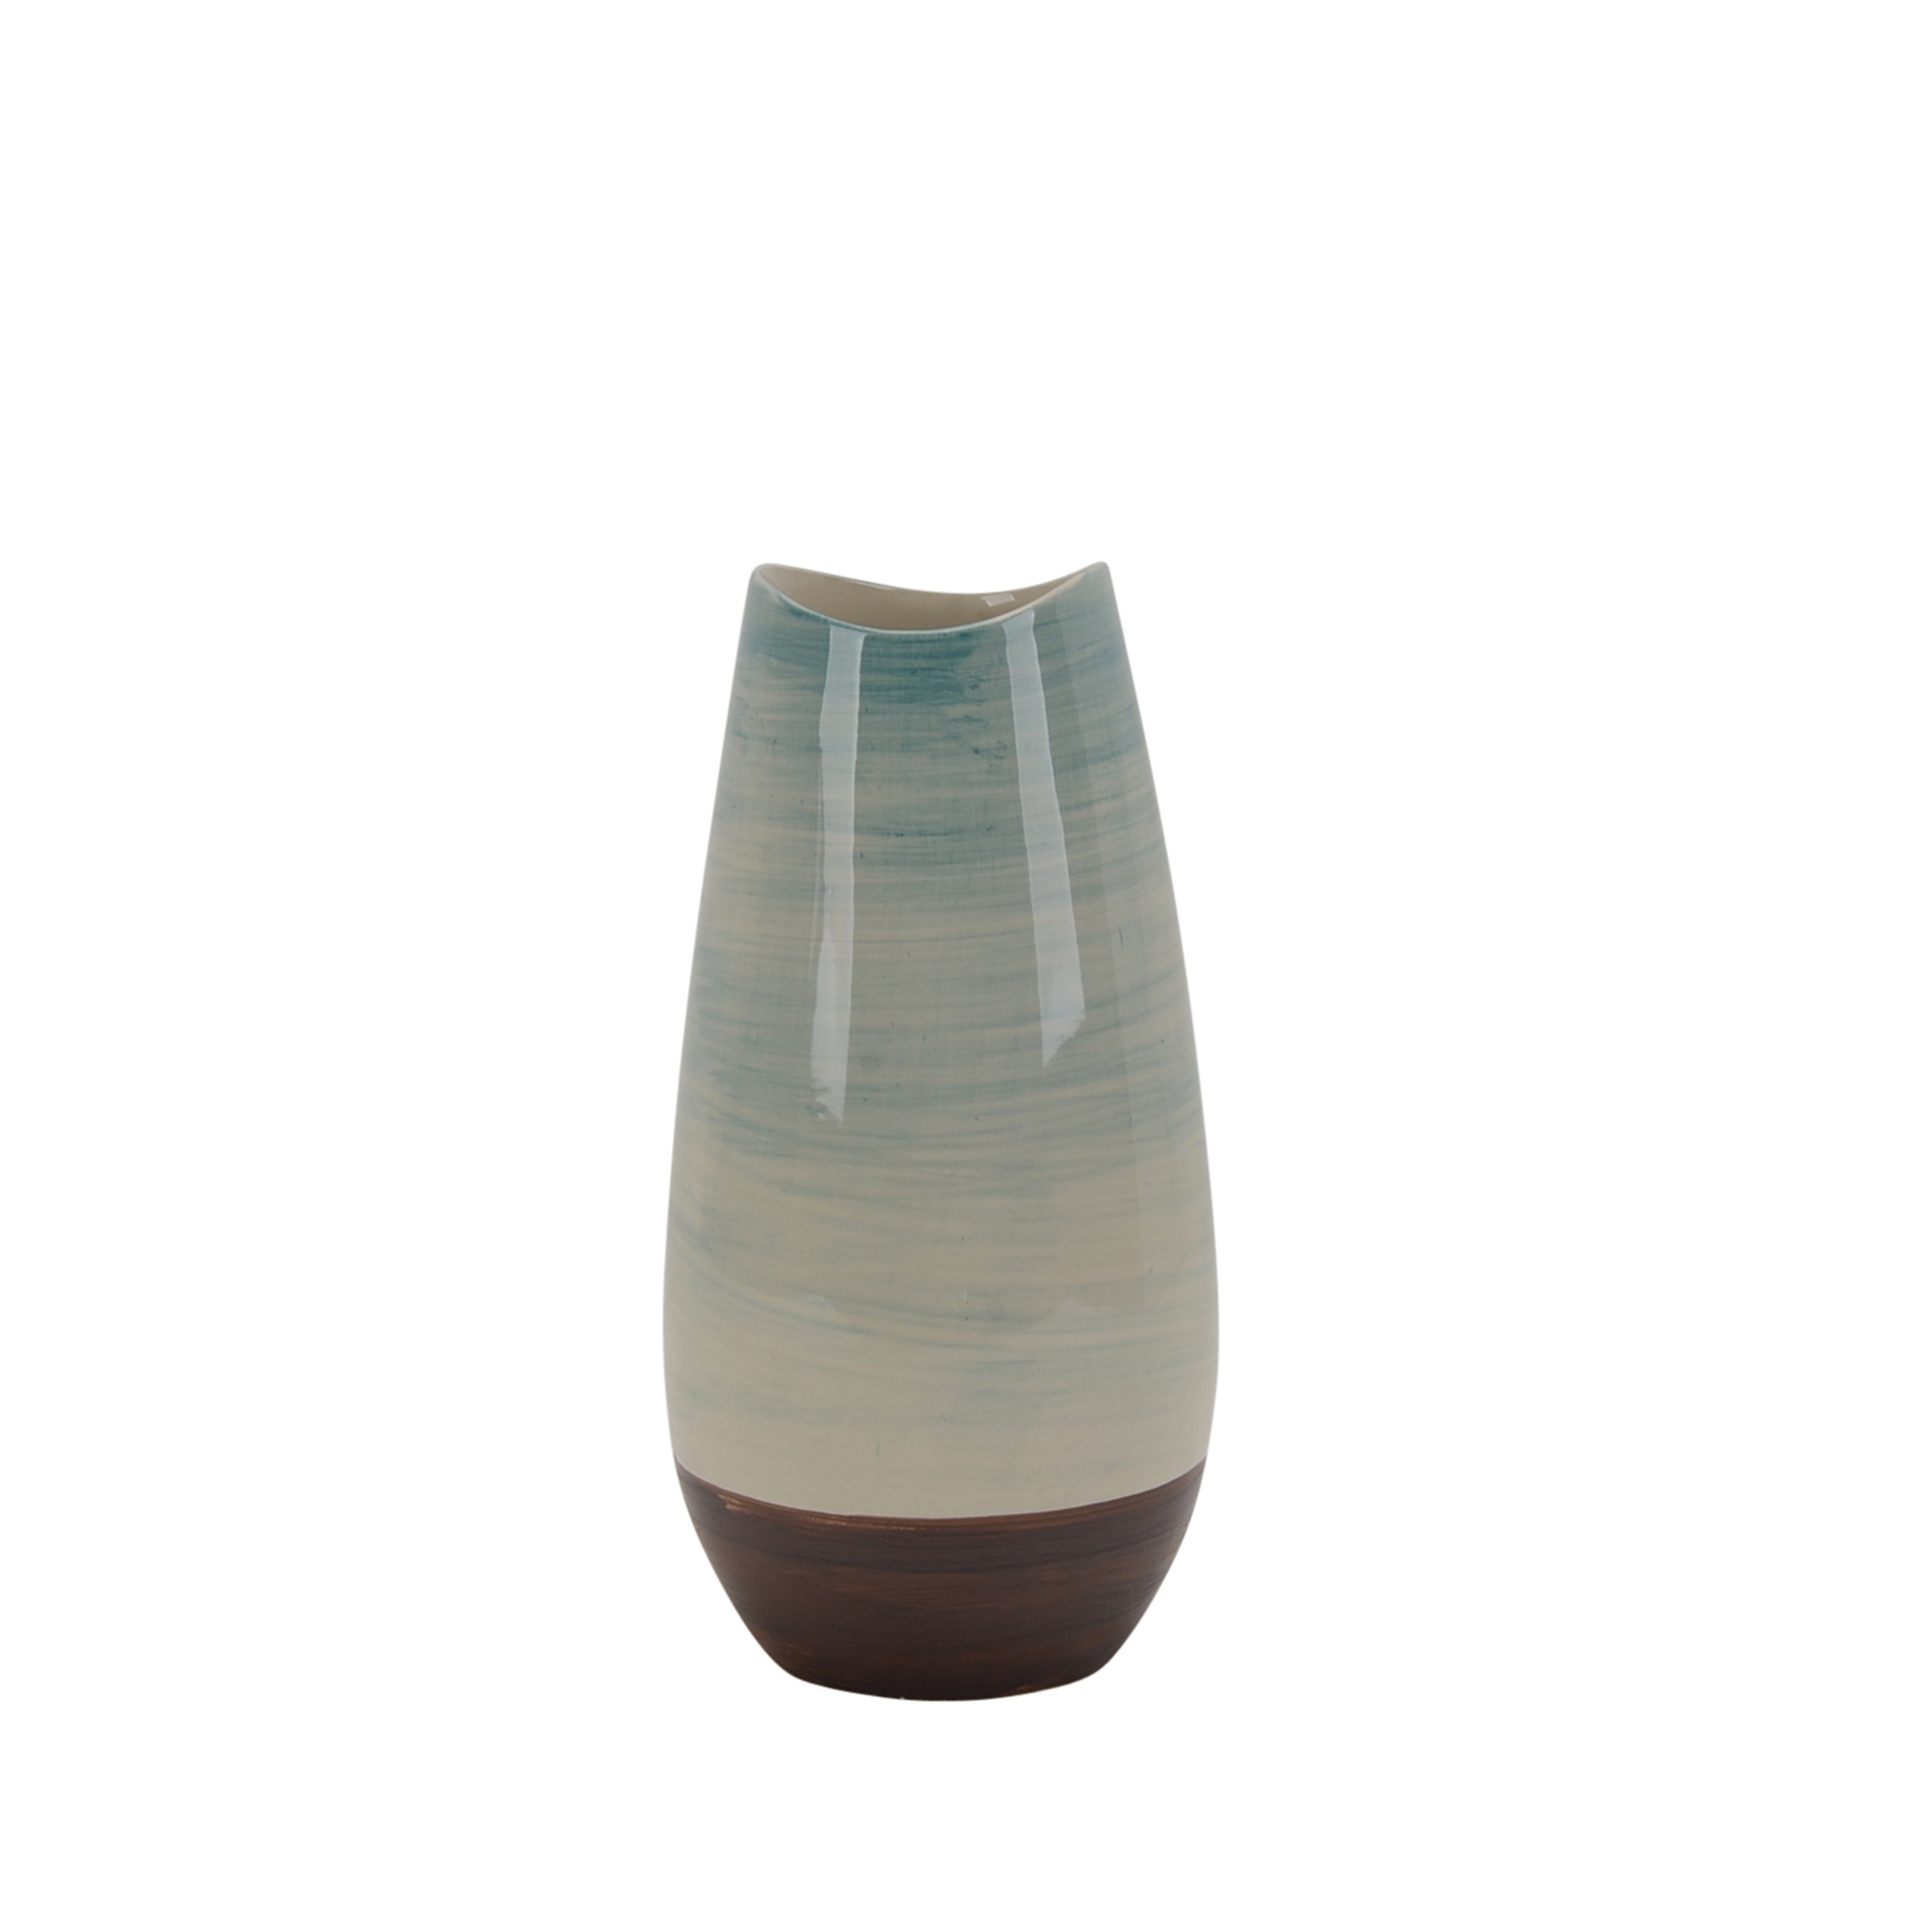 Transitional Style Ceramic Vase with Round Base, Multicolor